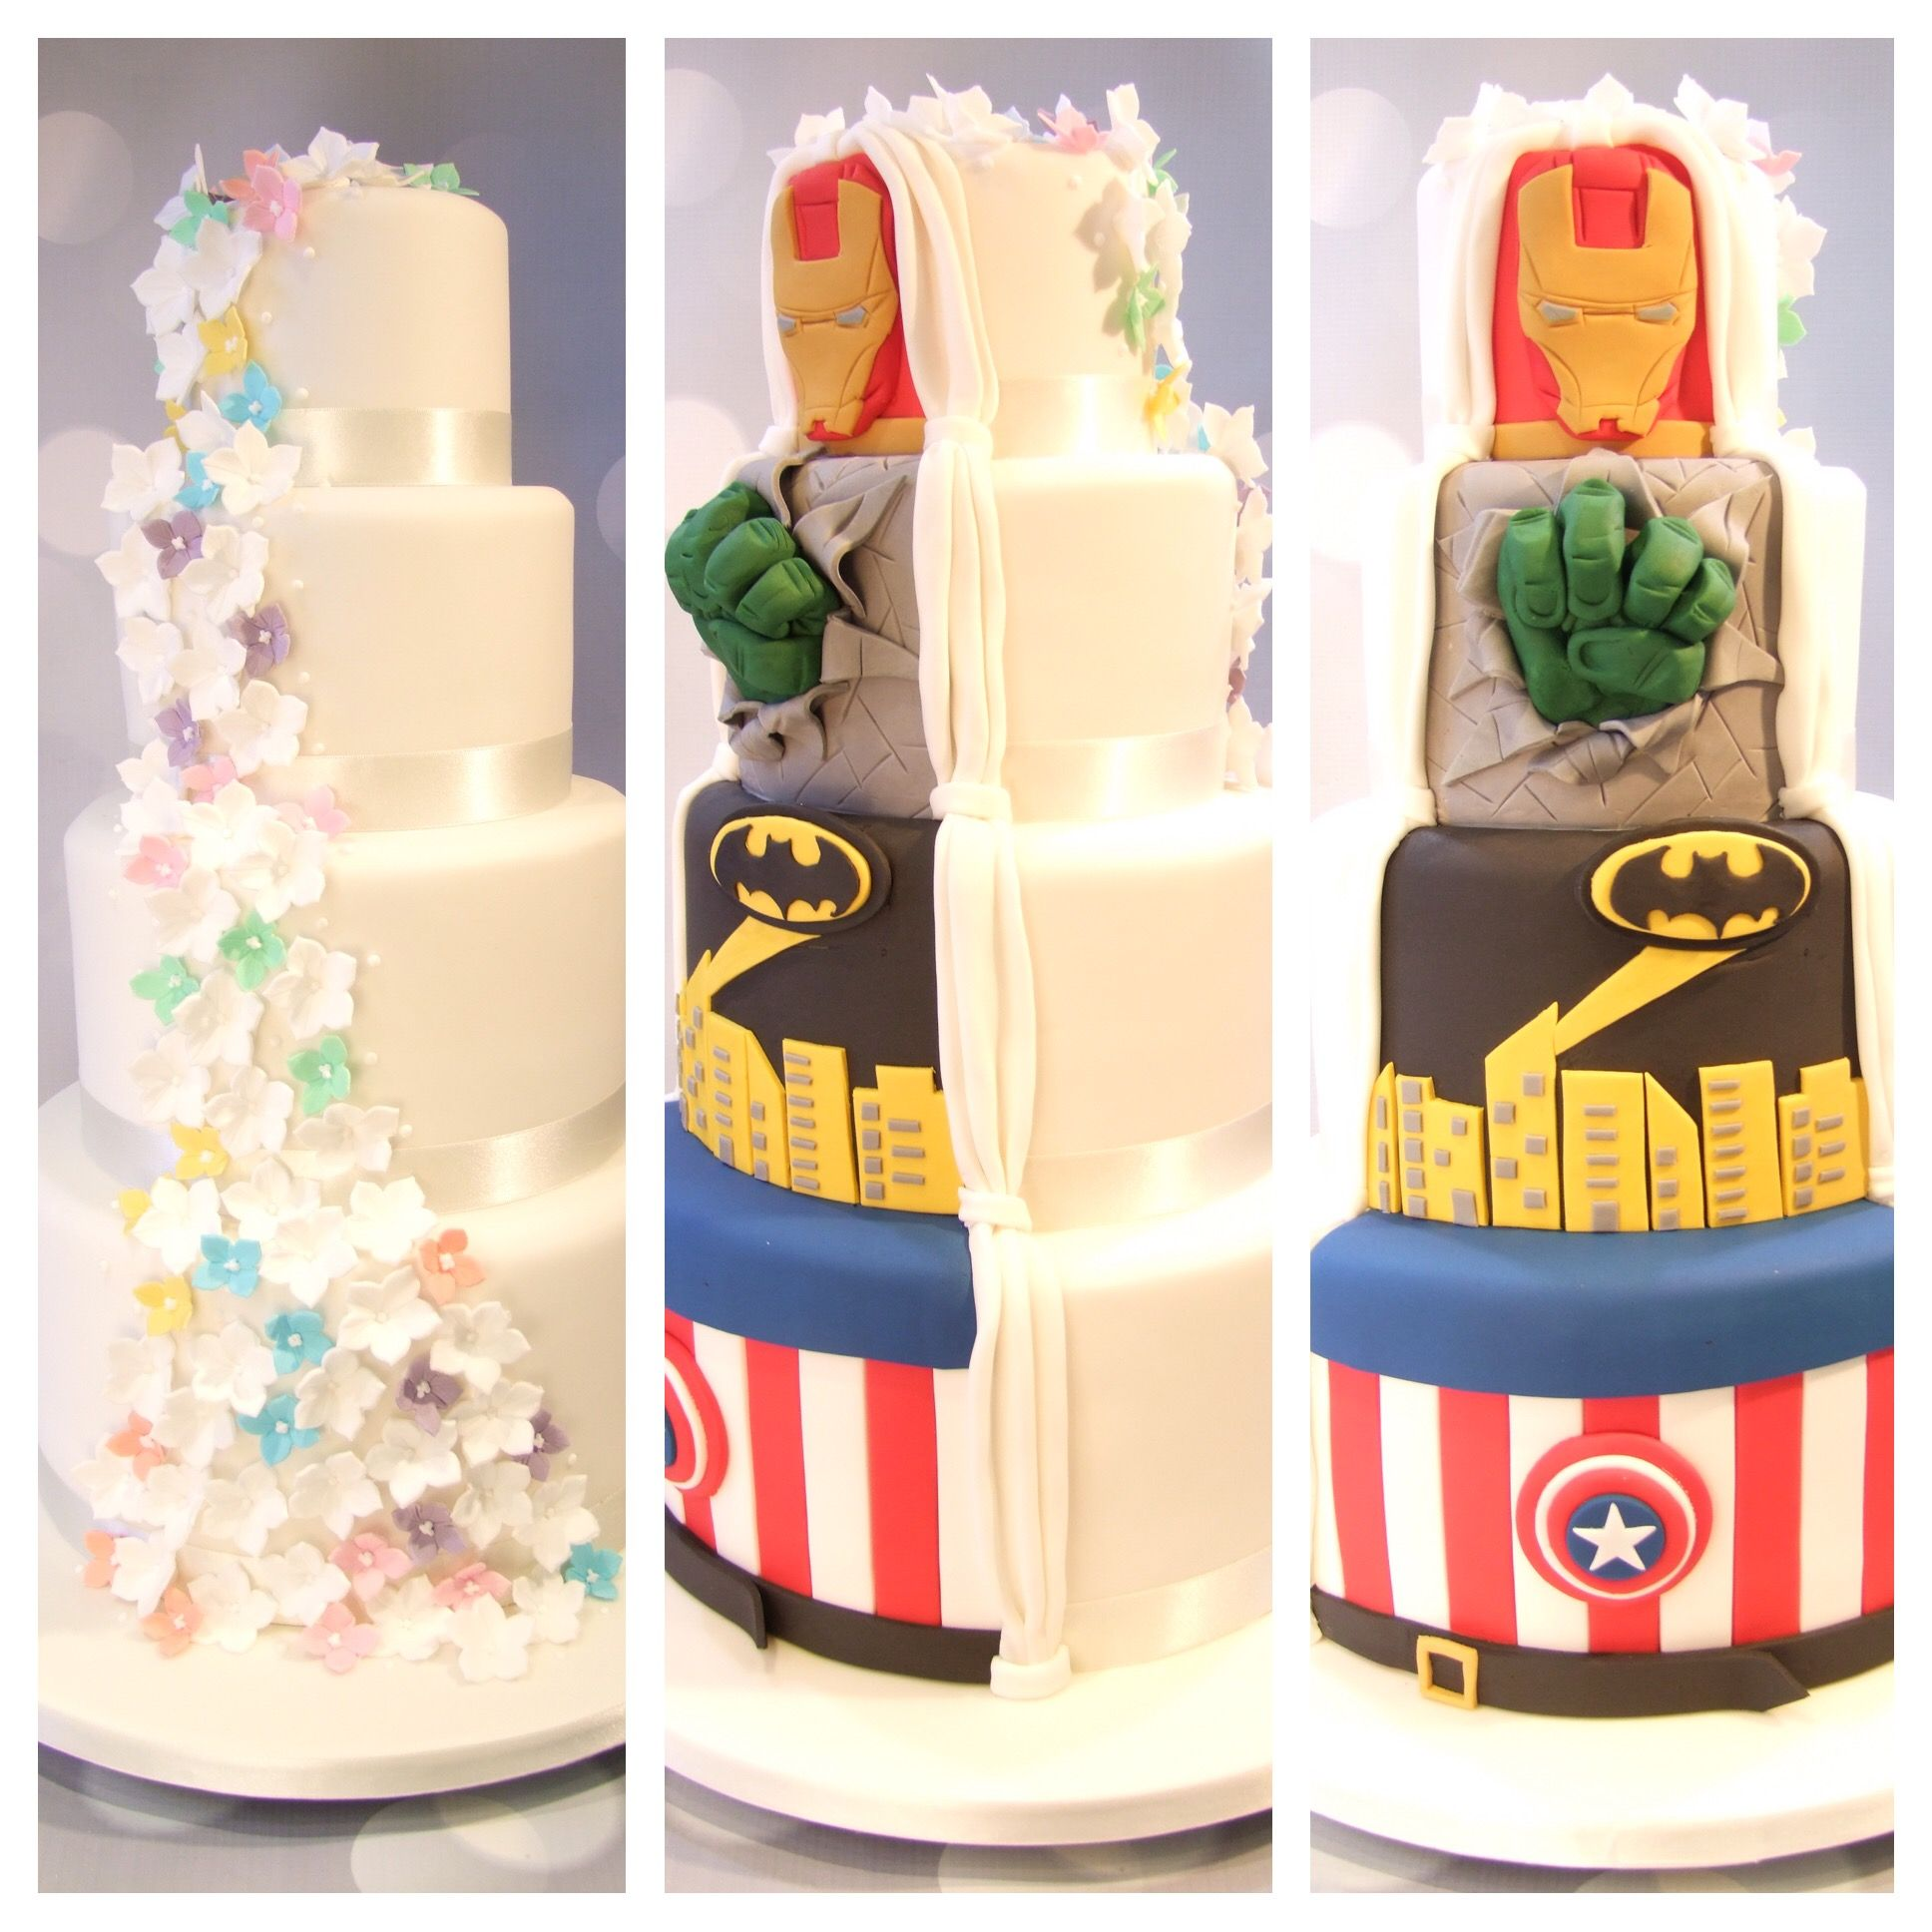 Split Superhero Cake Blossom cascade traditionalquirky hidden